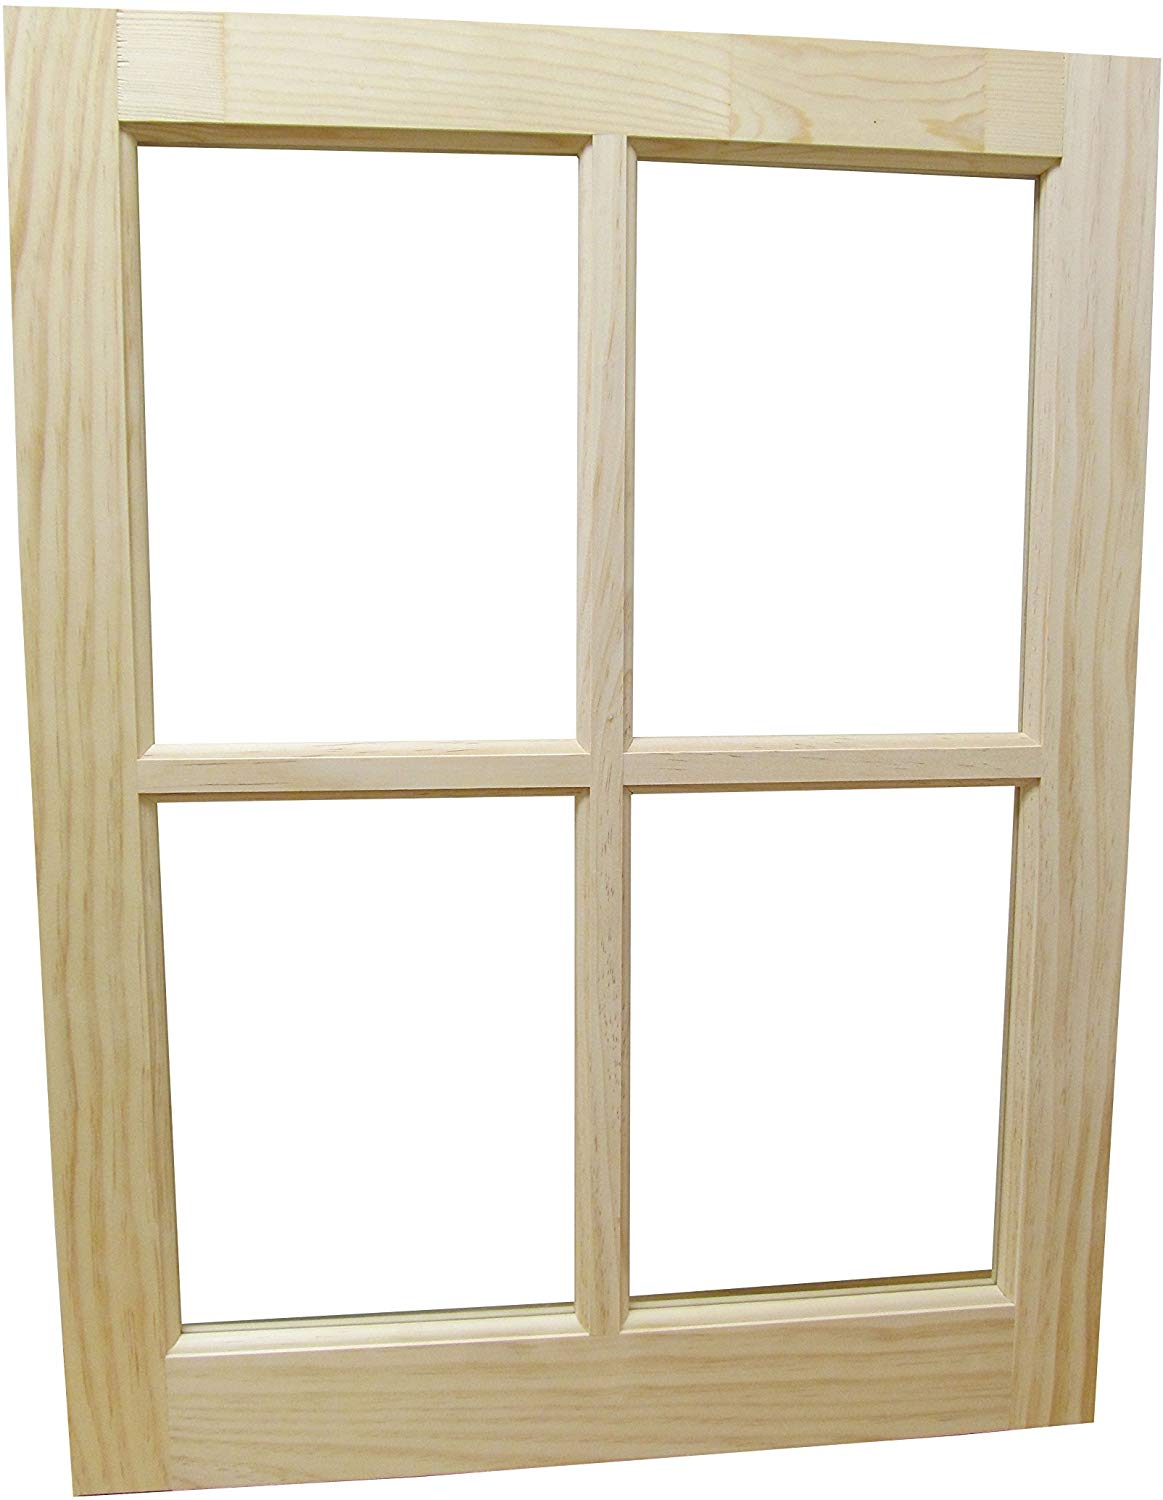 "Wooded Barn Sash Window Traditional Style 22"" x 29"""